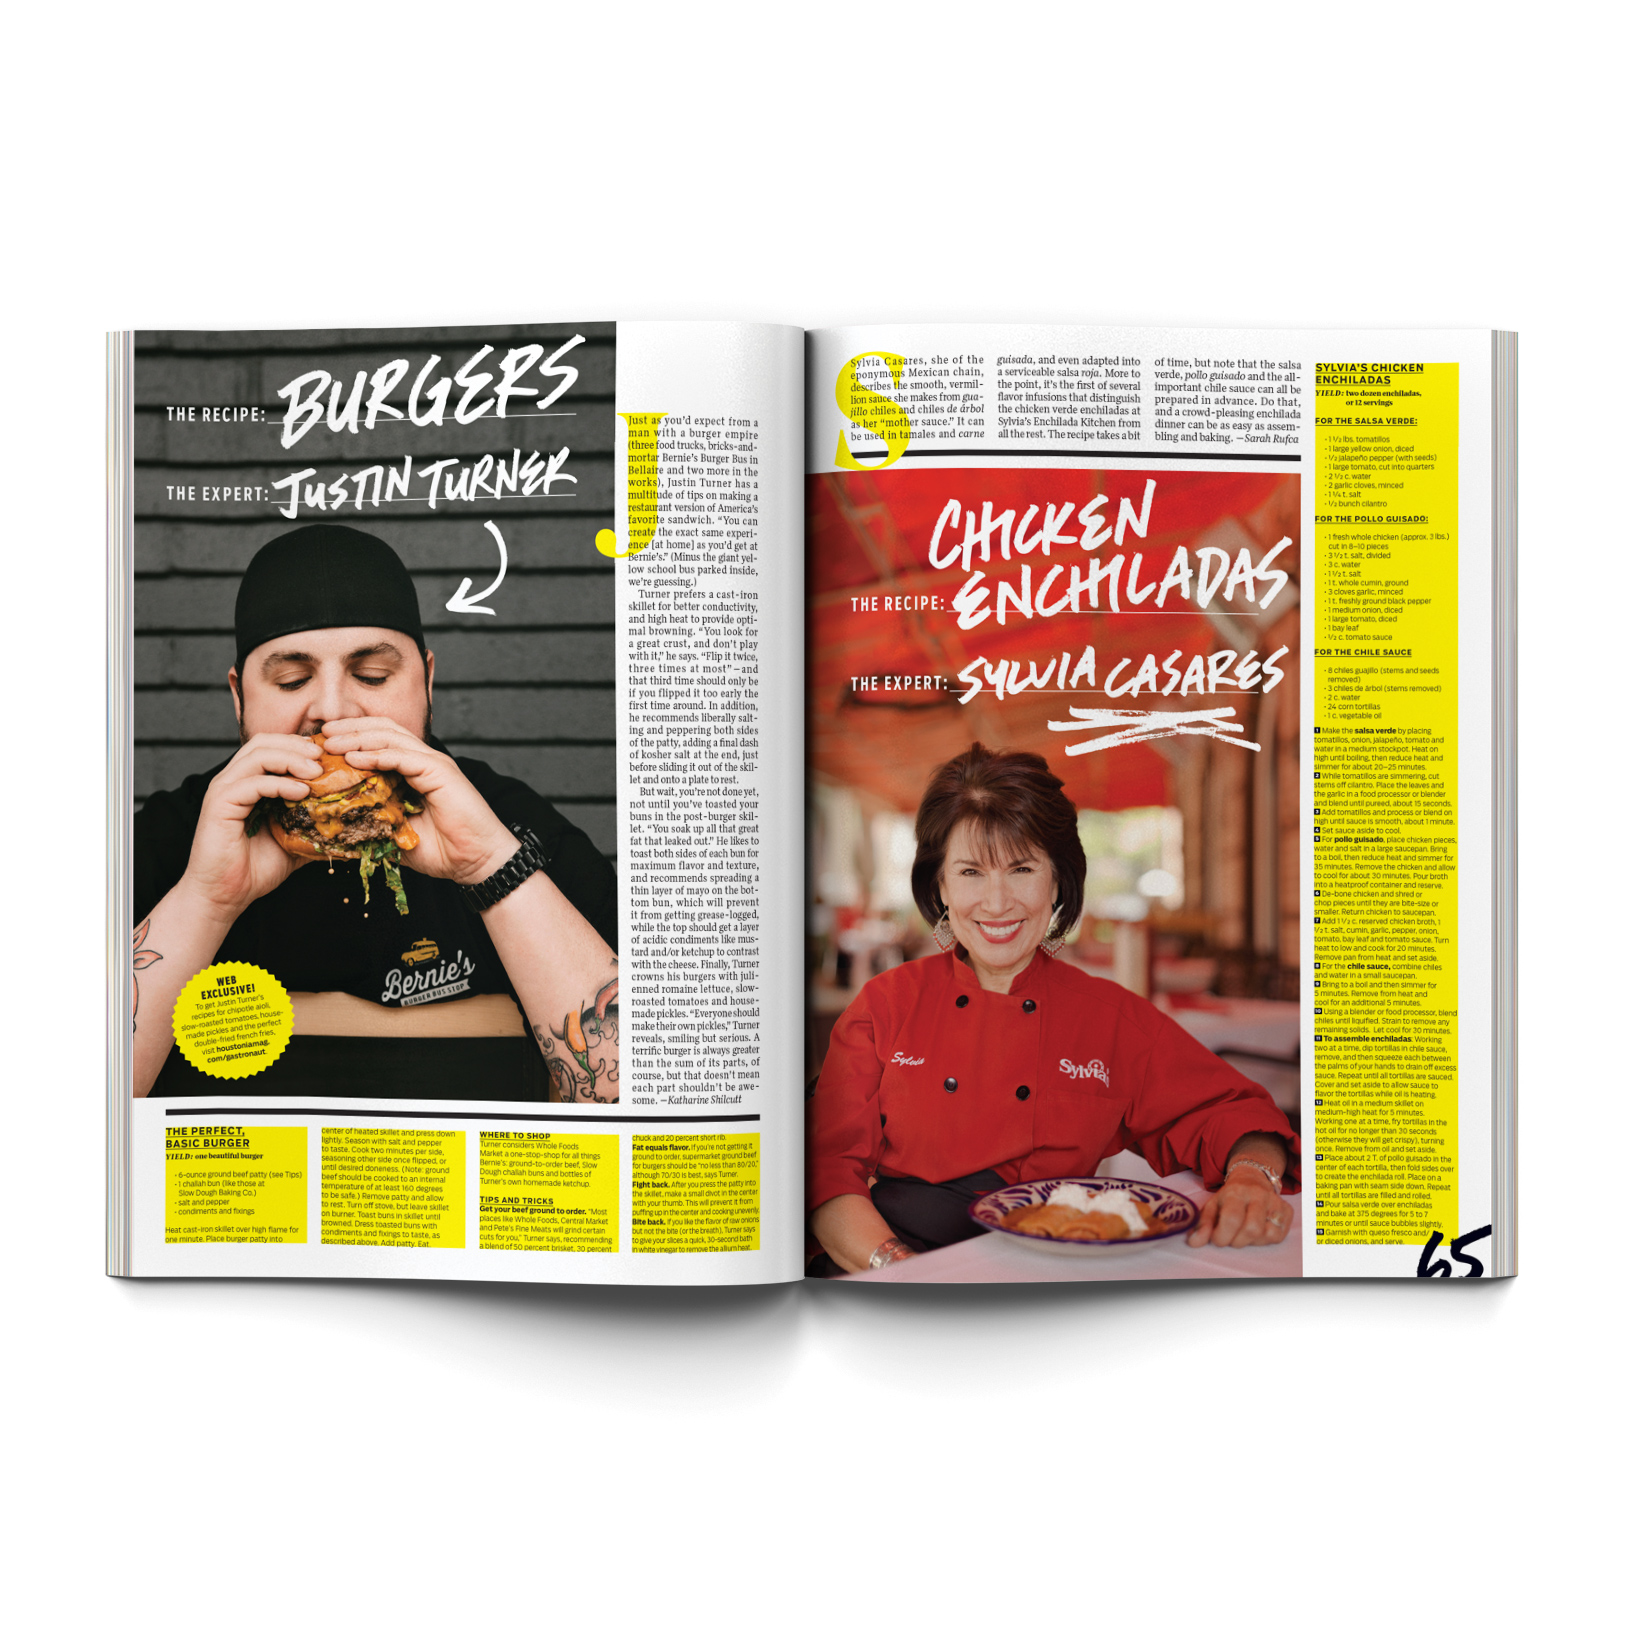 Chefs from Houston are featured in Houstonia Magazine with photographs by Todd Spoth.